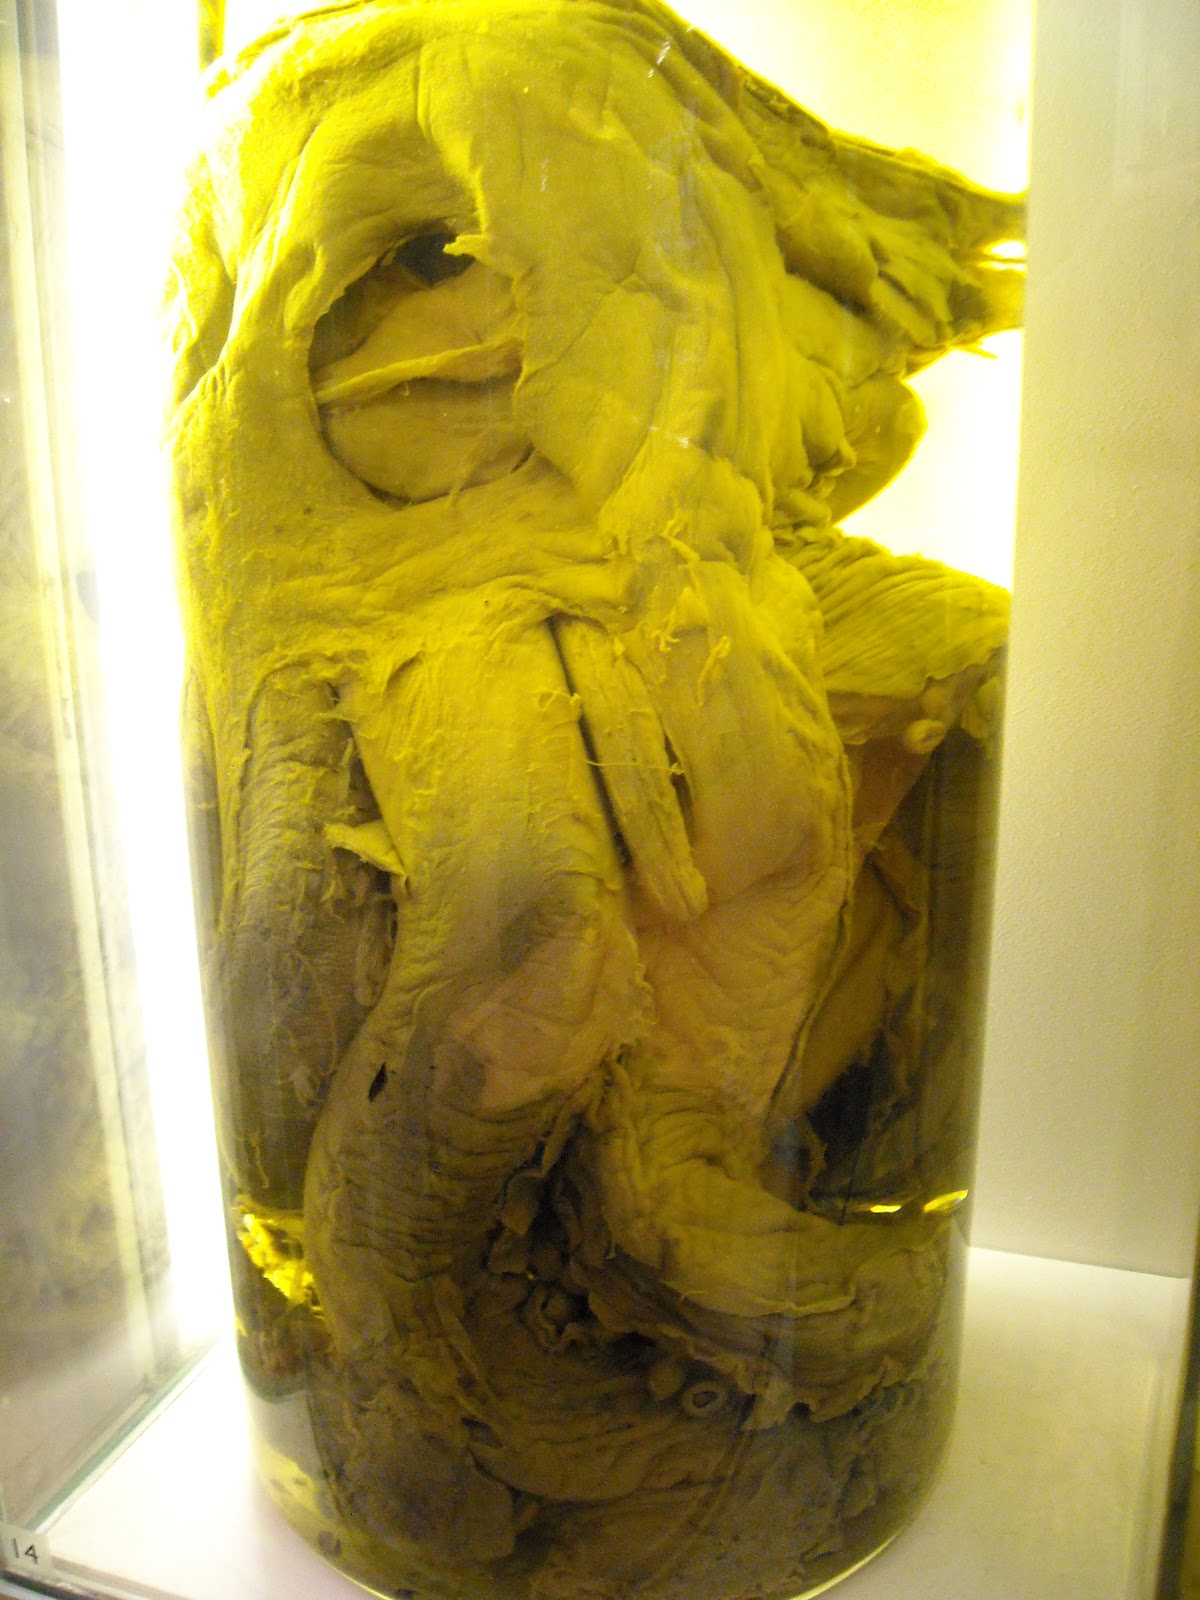 Giant Squid bits in a jar